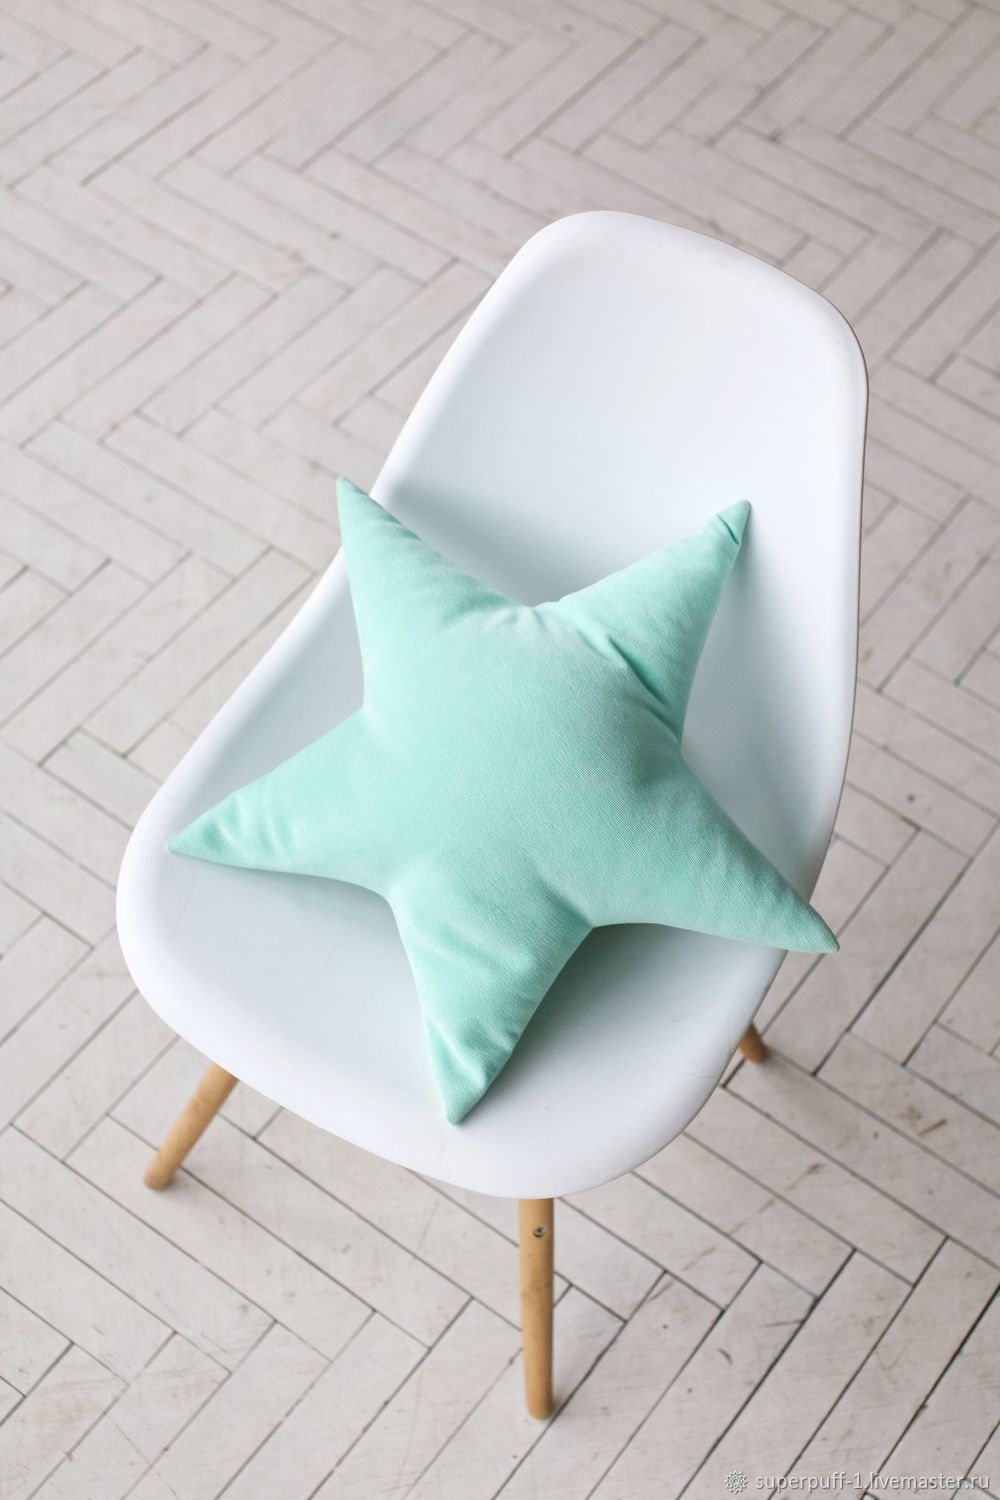 Decorative Pillow Star Mint Superpuff, Pillow, Moscow,  Фото №1